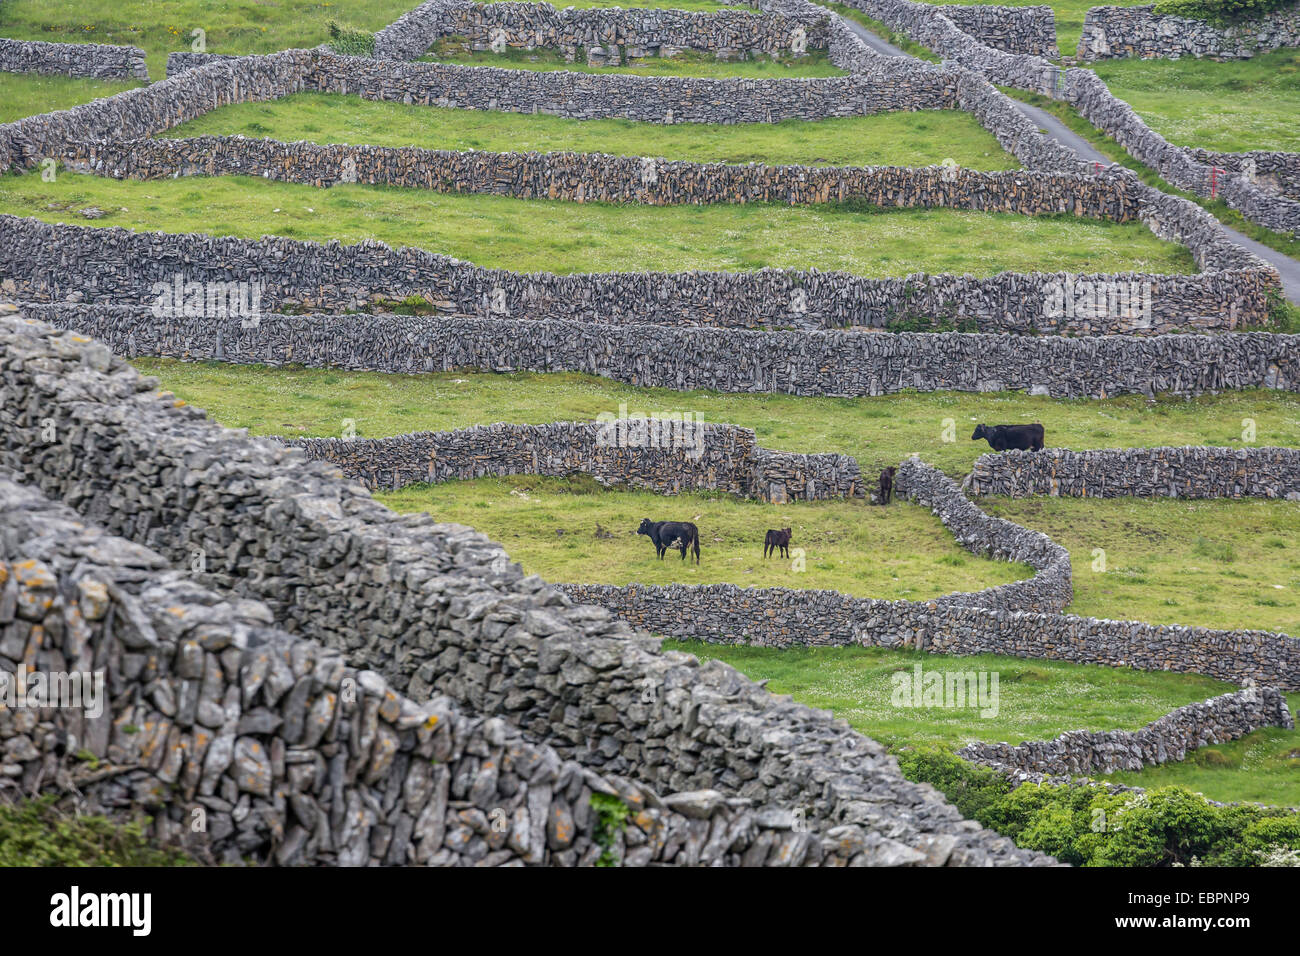 Rock walls create small paddocks for sheep and cattle on Inisheer, the easternmost of the Aran Islands, Republic - Stock Image